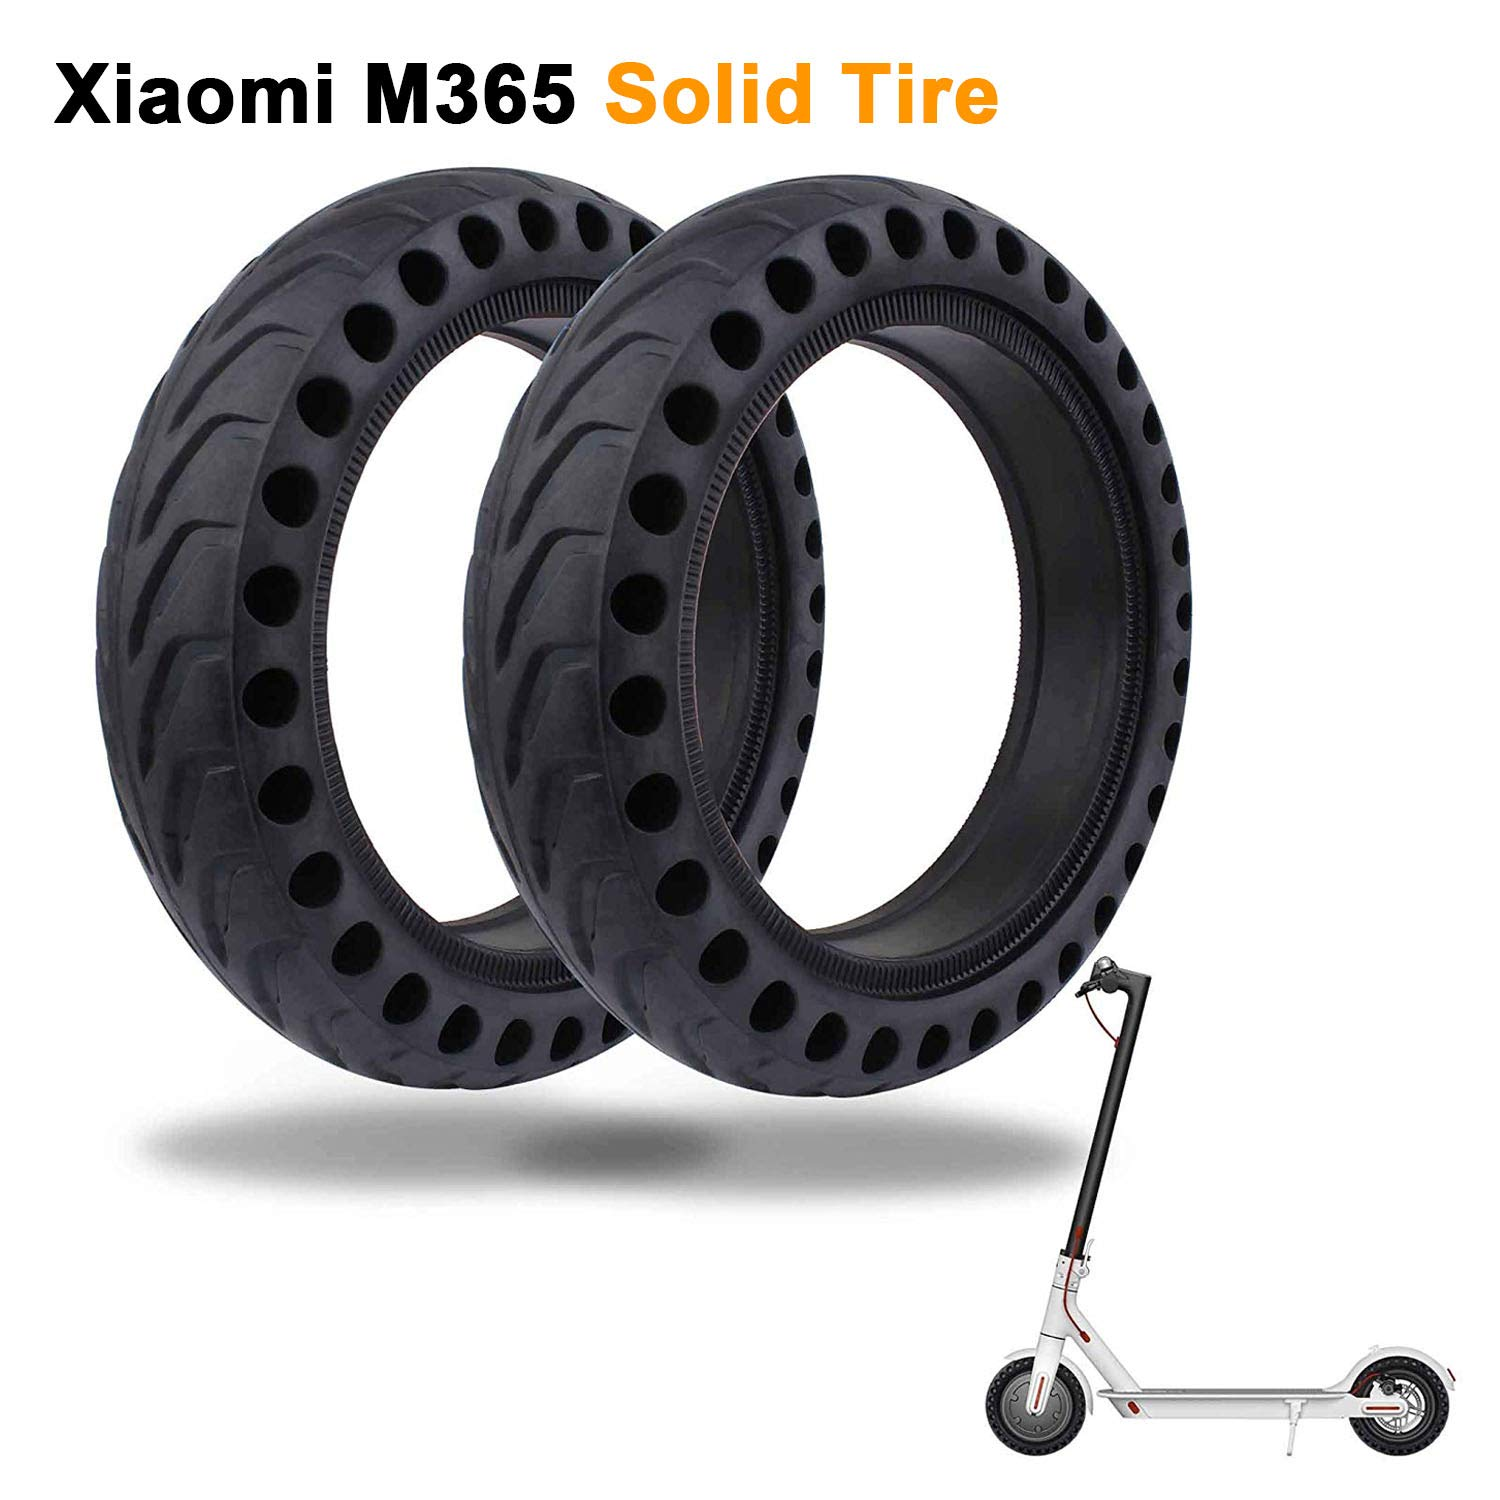 LuYang Solid Tire Replacement for Electric Scooter Xiaomi Mi m365 / gotrax gxl V2,8.5 inches Solid Tires Explosion-Proof Tire for Xiaomi Mijia M365 Electric Scooter/GOTRAX GXL V2 Scooter【Two Piece】 by LuYang